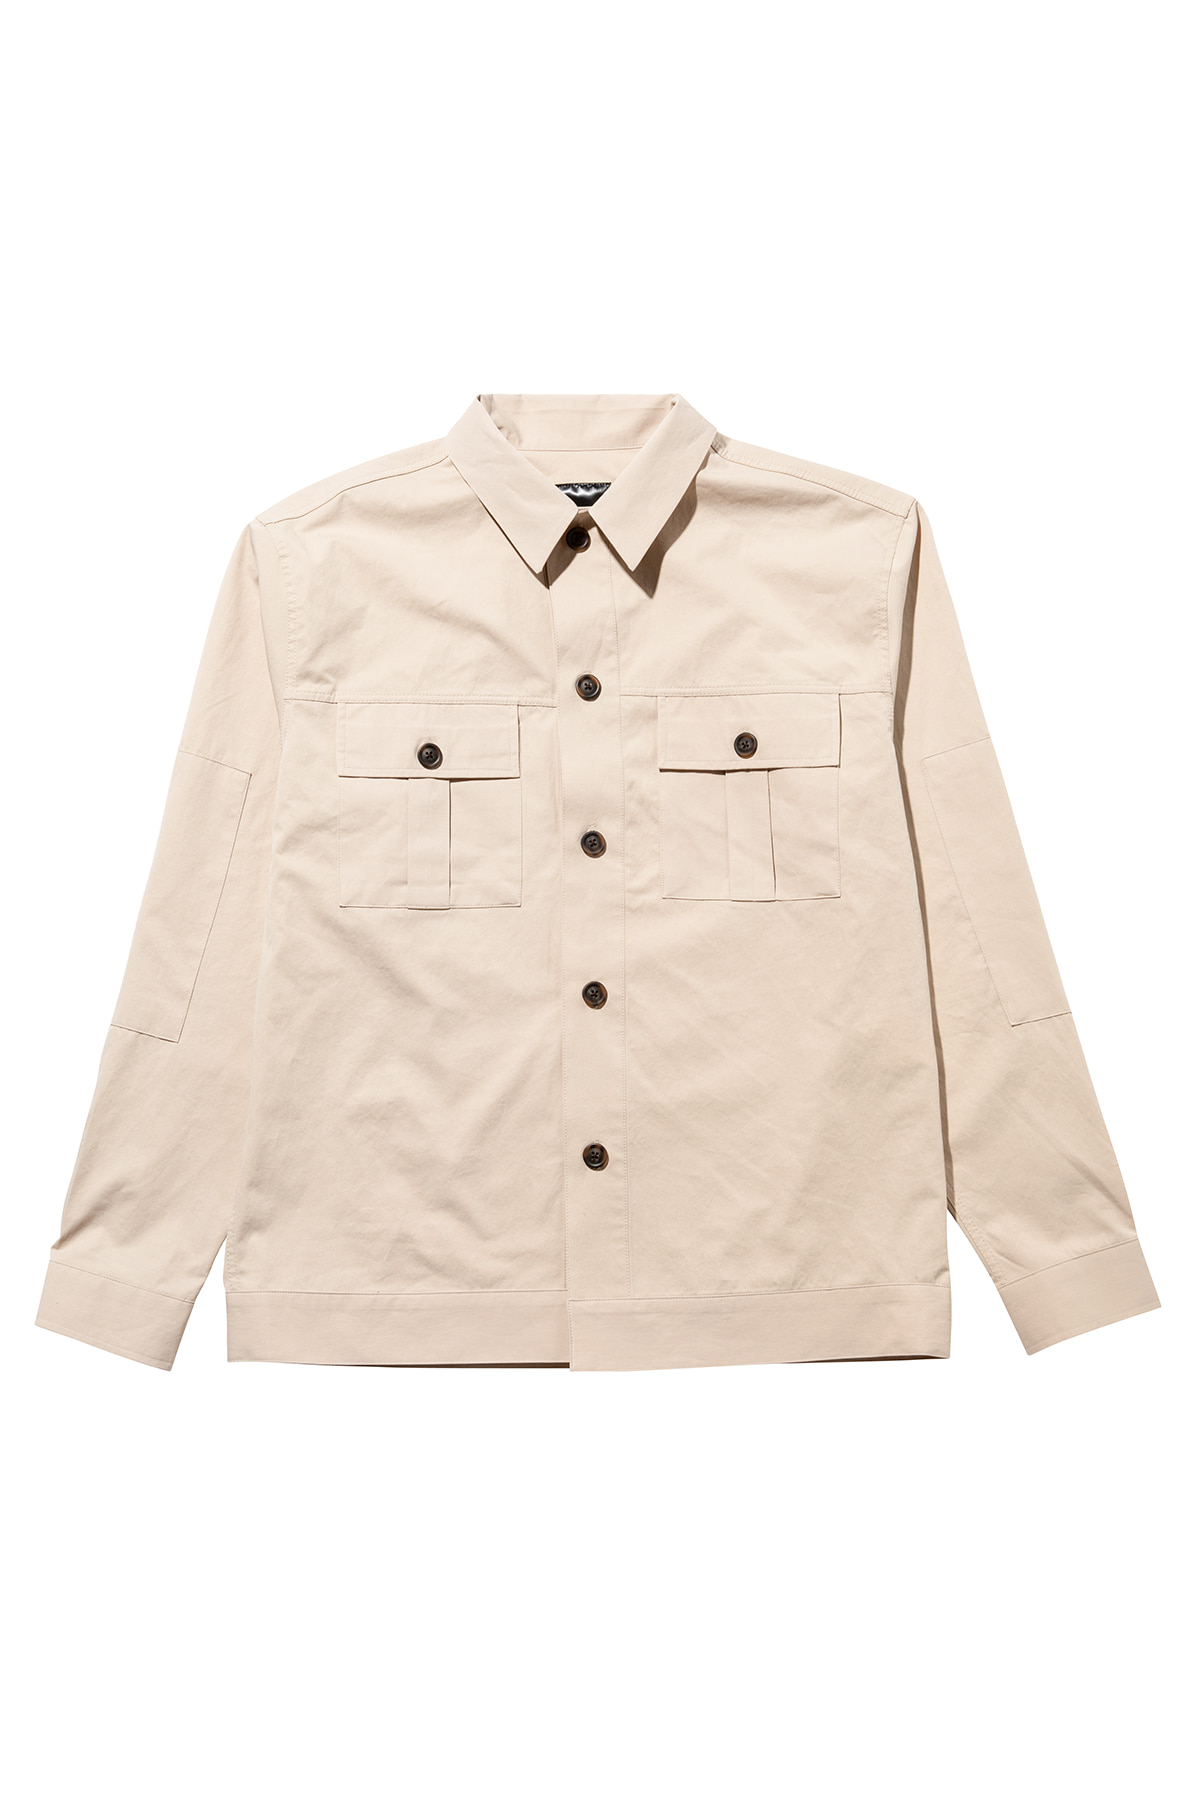 페이탈리즘 Fatigue pocket shirt jacket (beige) #jp36